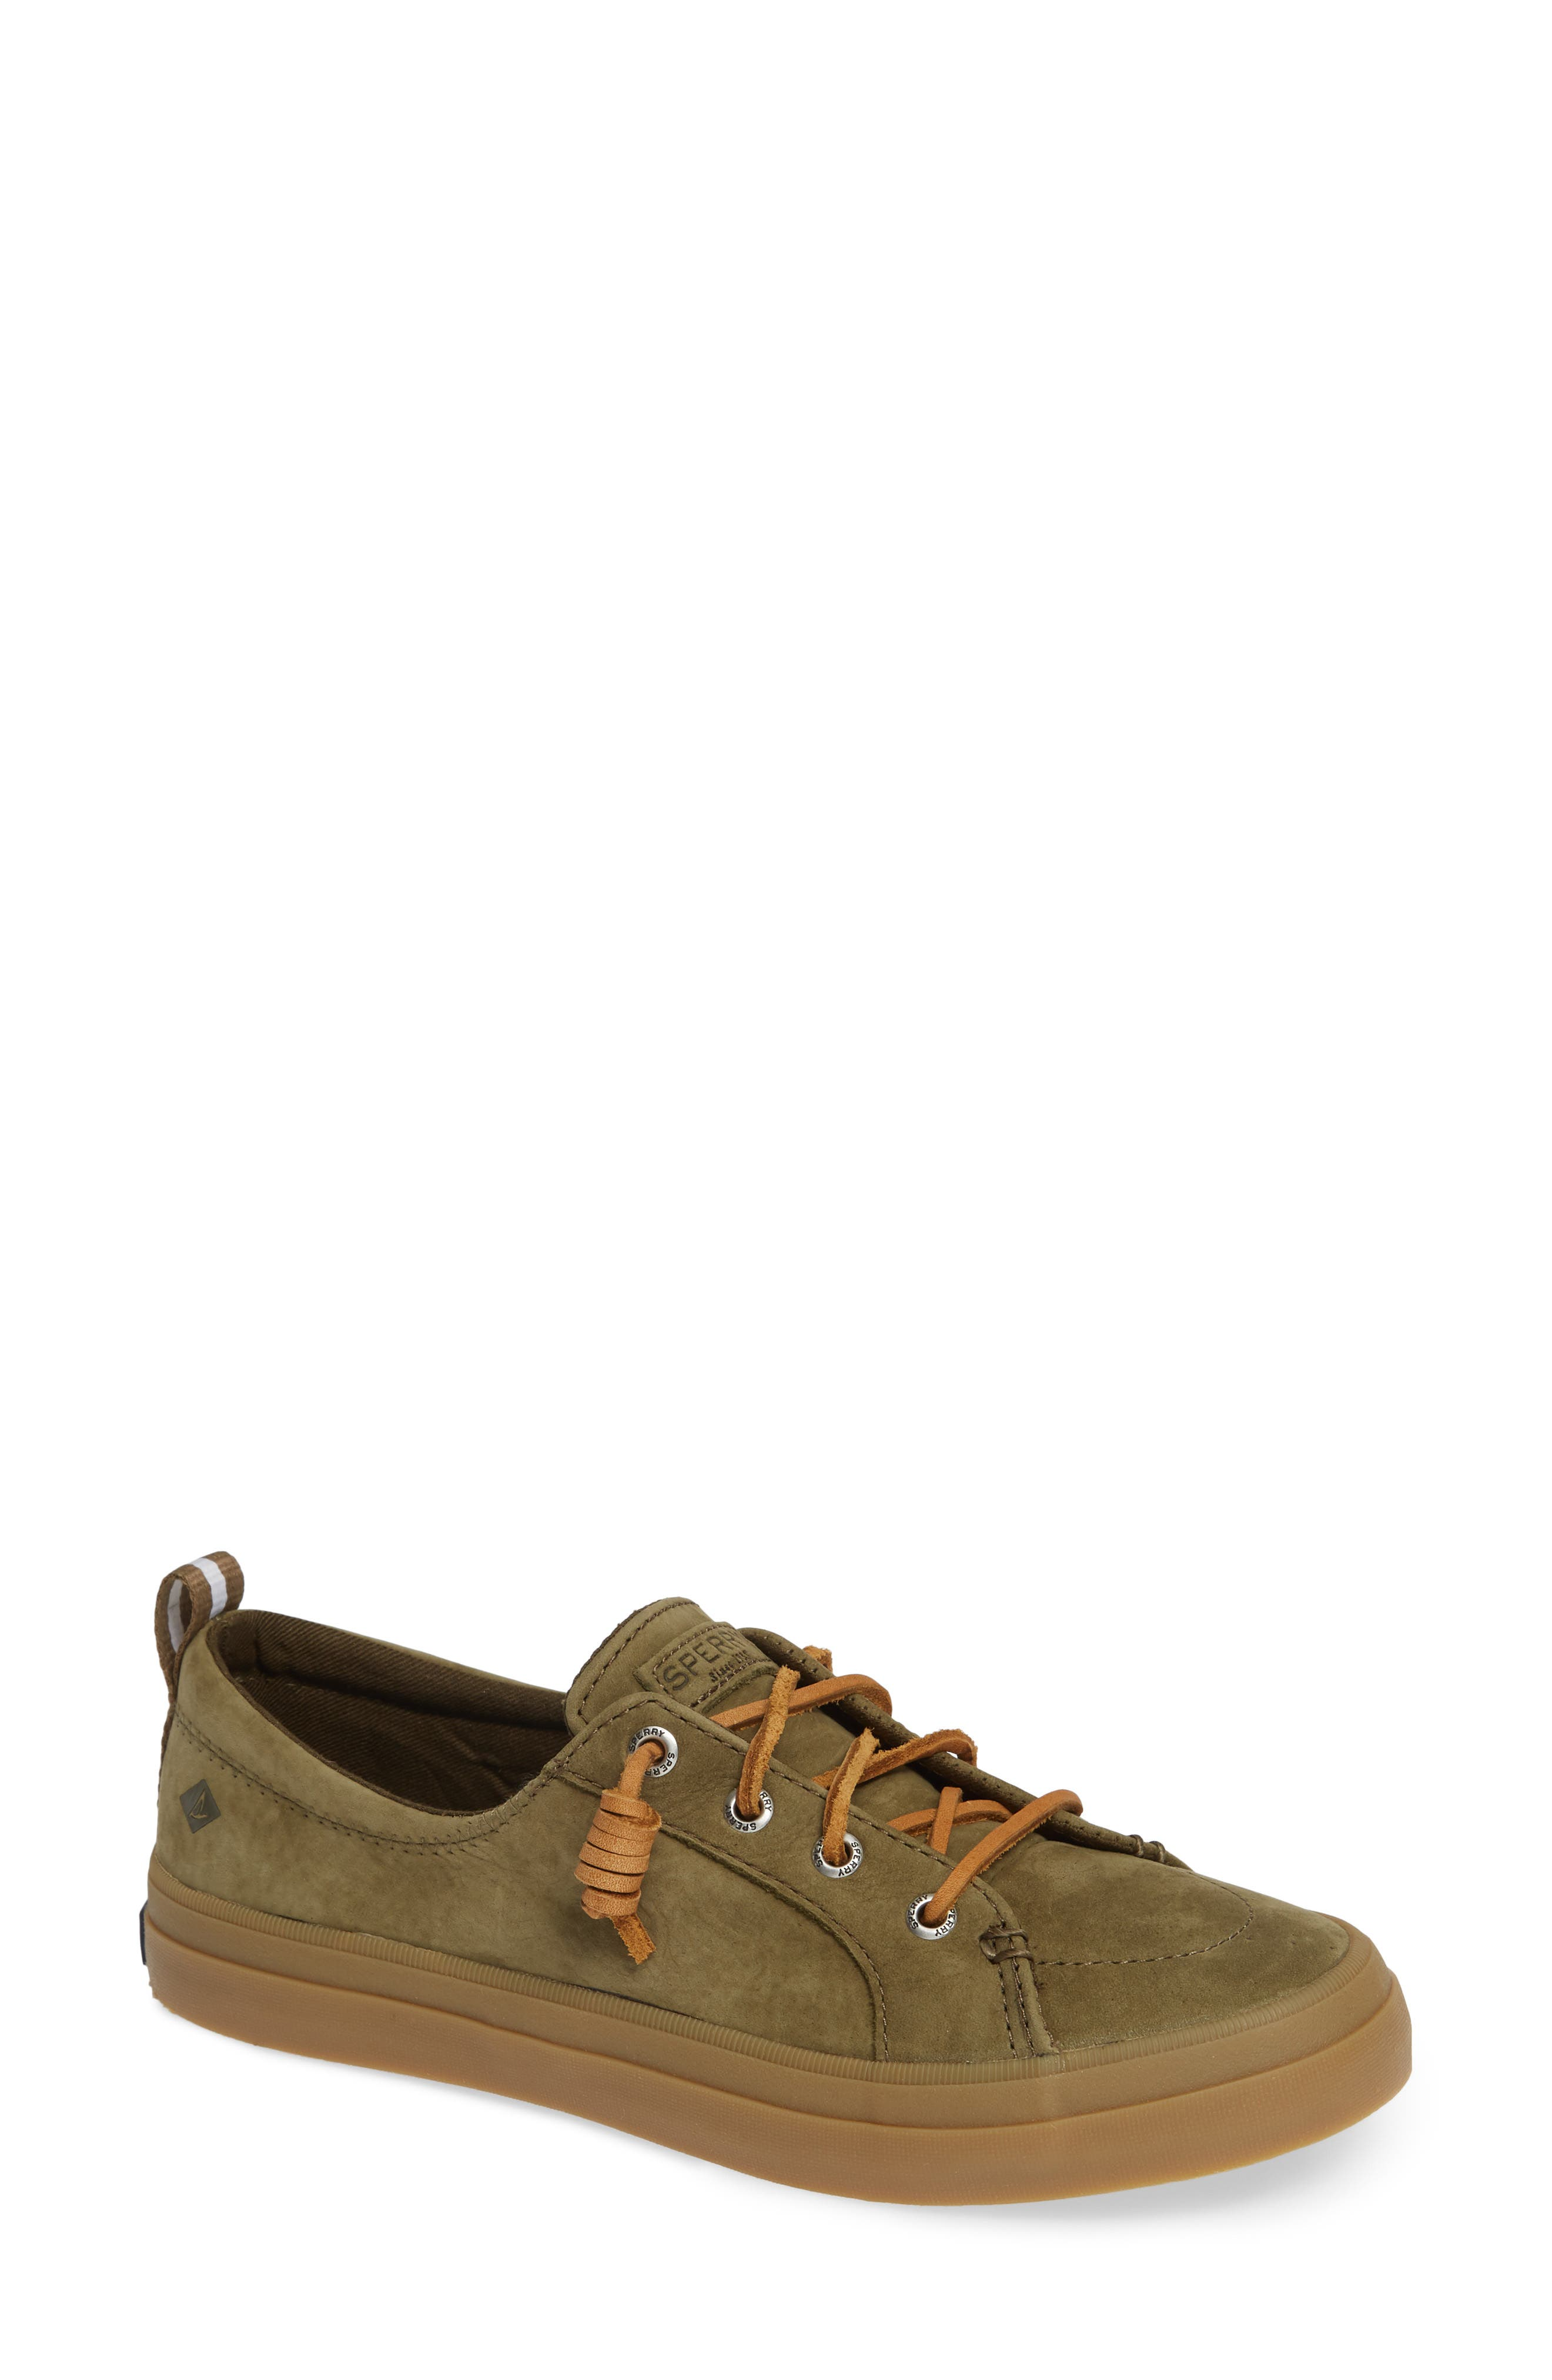 Crest Vibe Sneaker,                             Main thumbnail 1, color,                             OLIVE LEATHER